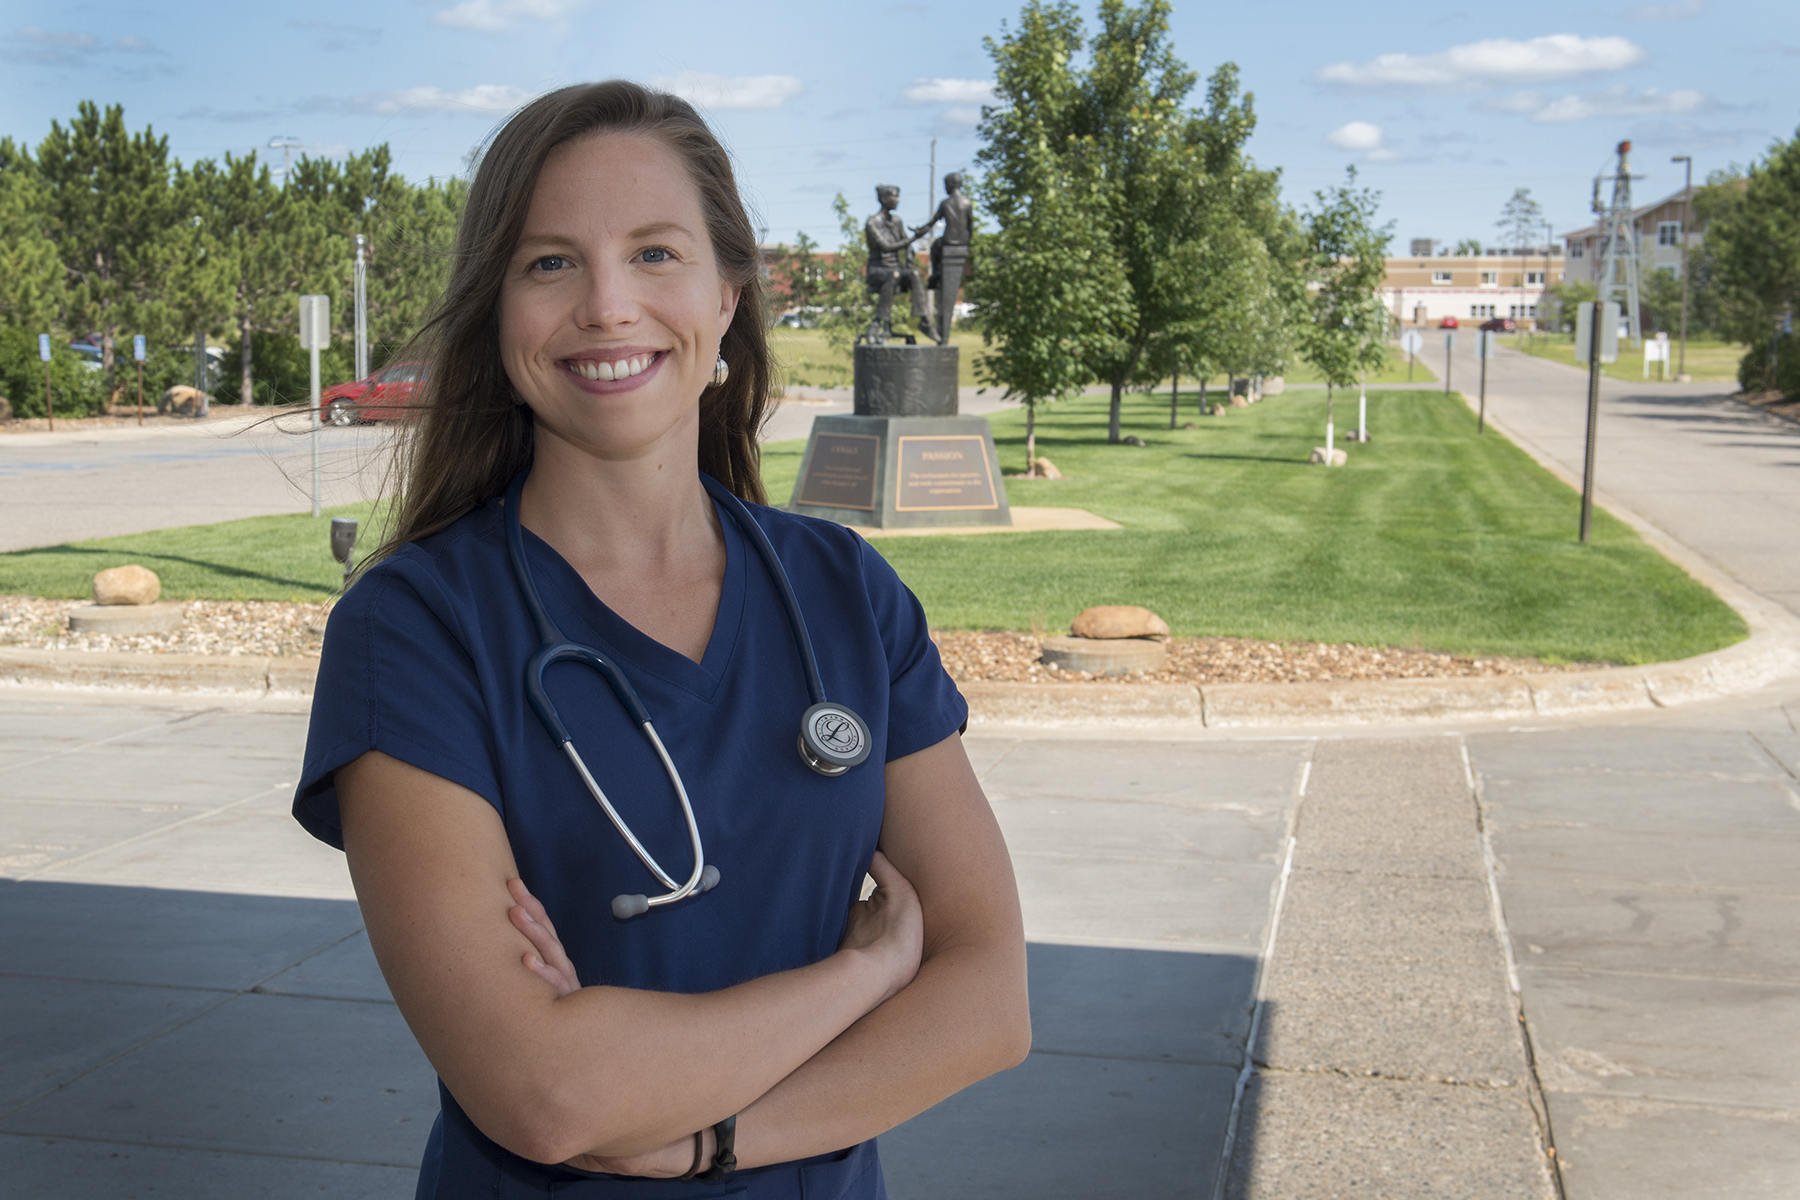 Skiing Accident Leads Katie Houg to NTC and a Future in Health Care